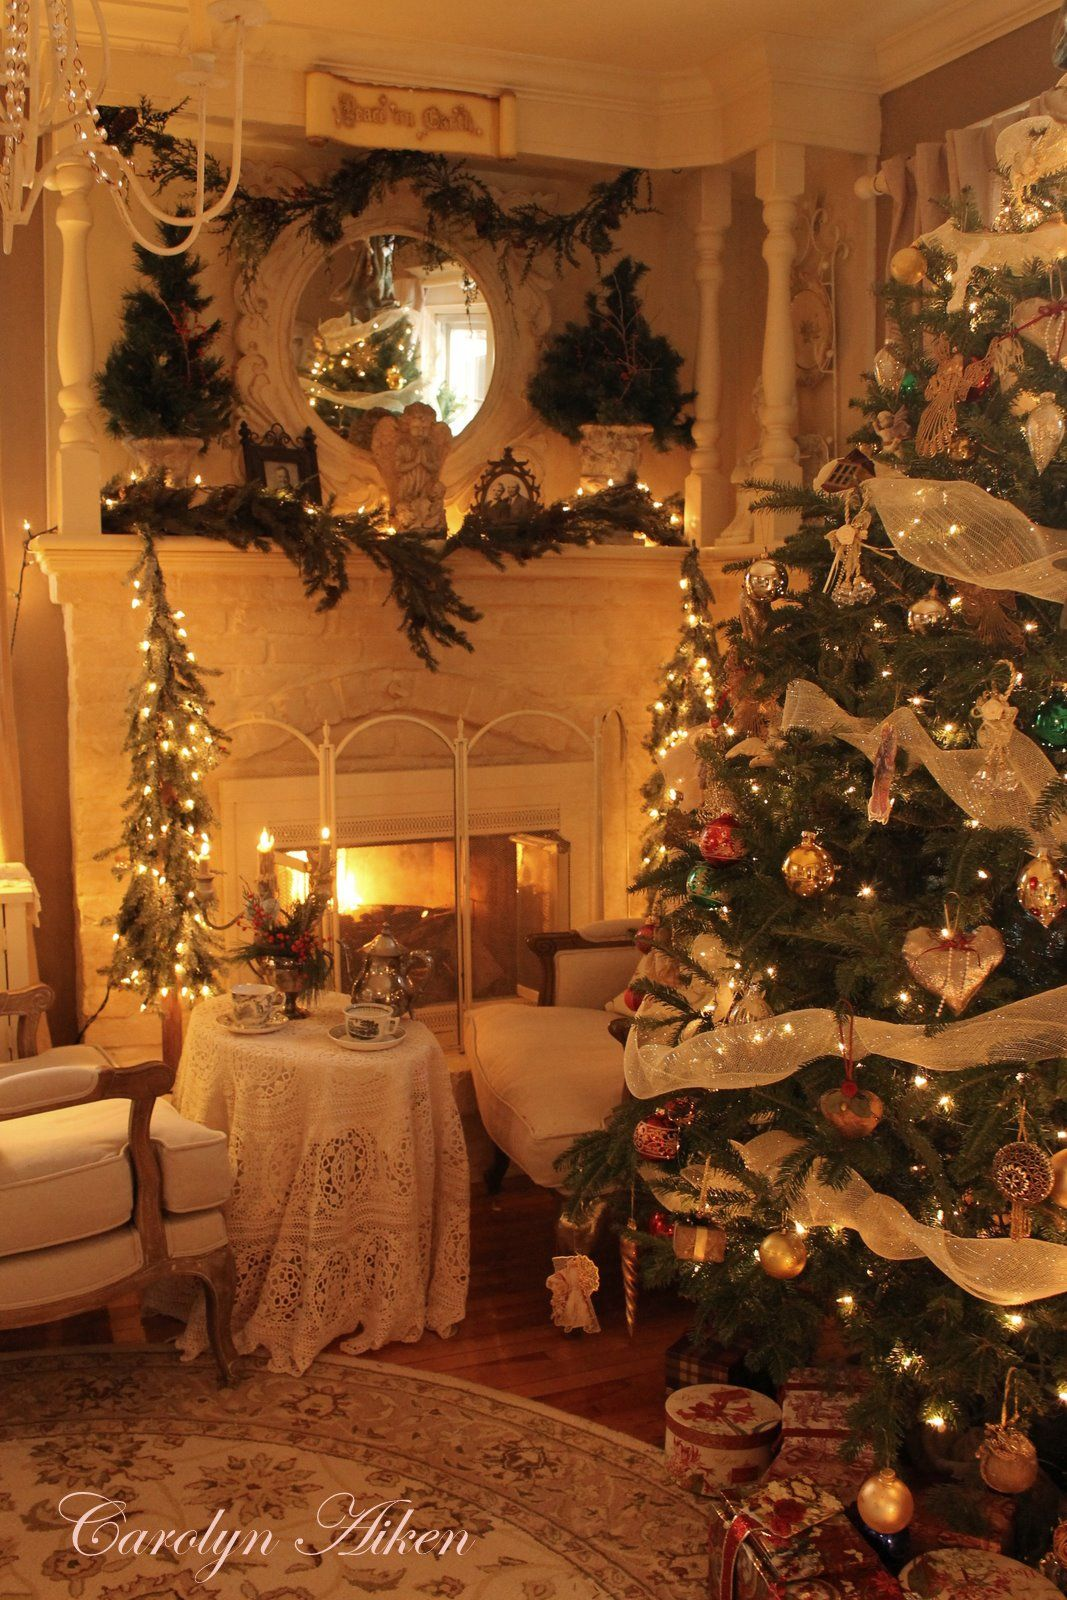 Hello everyone,      Come on in and join me for some holiday tea by the fireside.It has been a little chilly out so it is cozy here by the f...